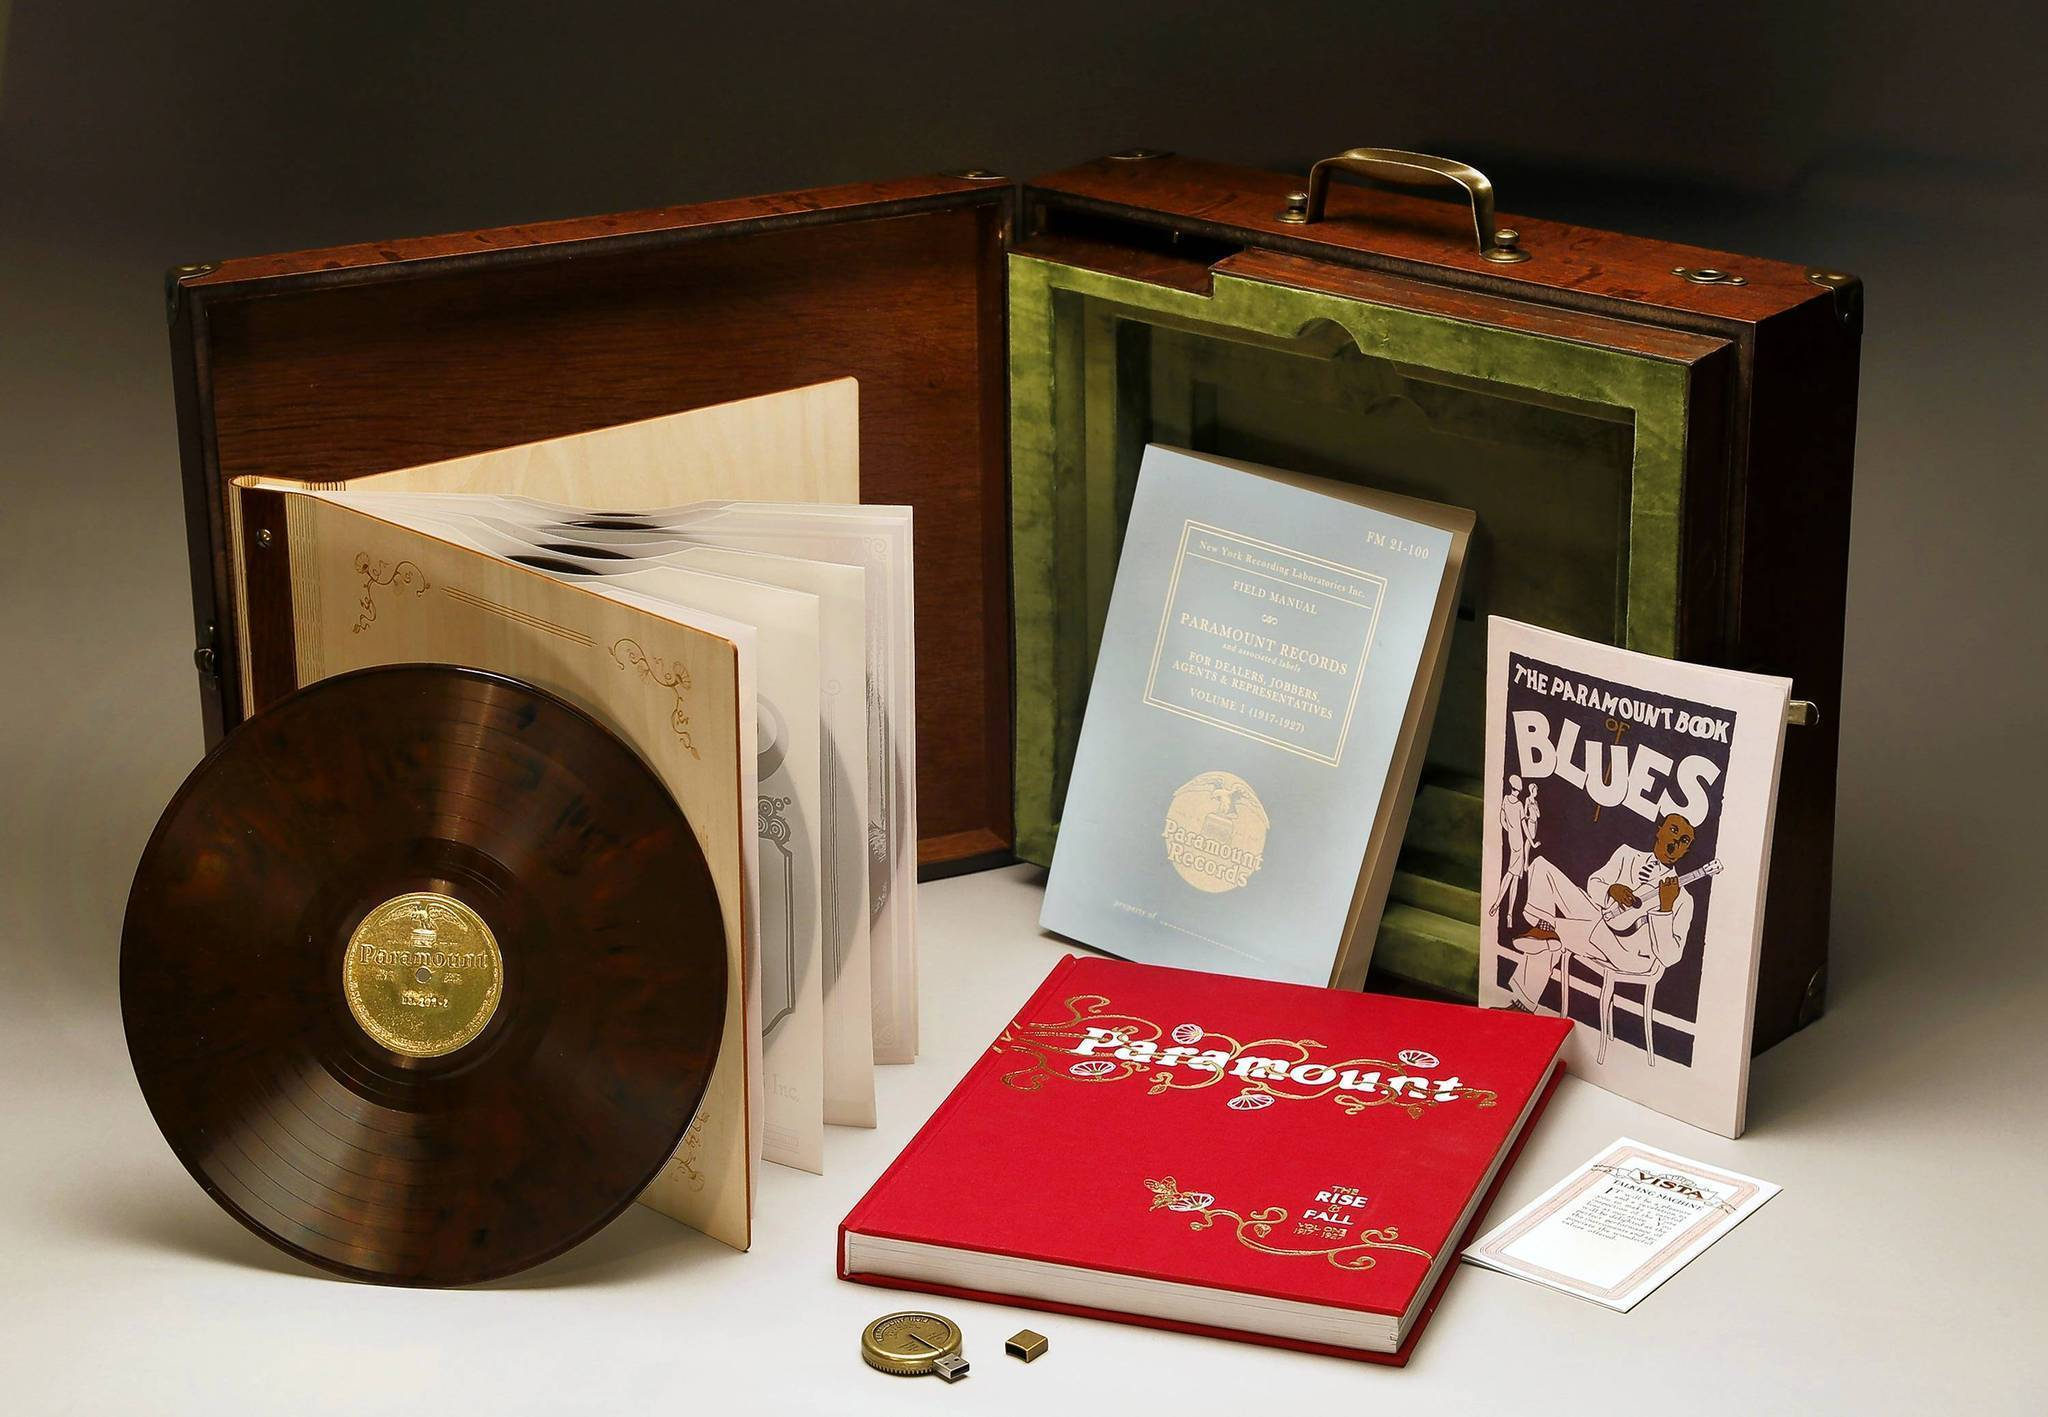 Massive Paramount Records Trove Has An Ear For History